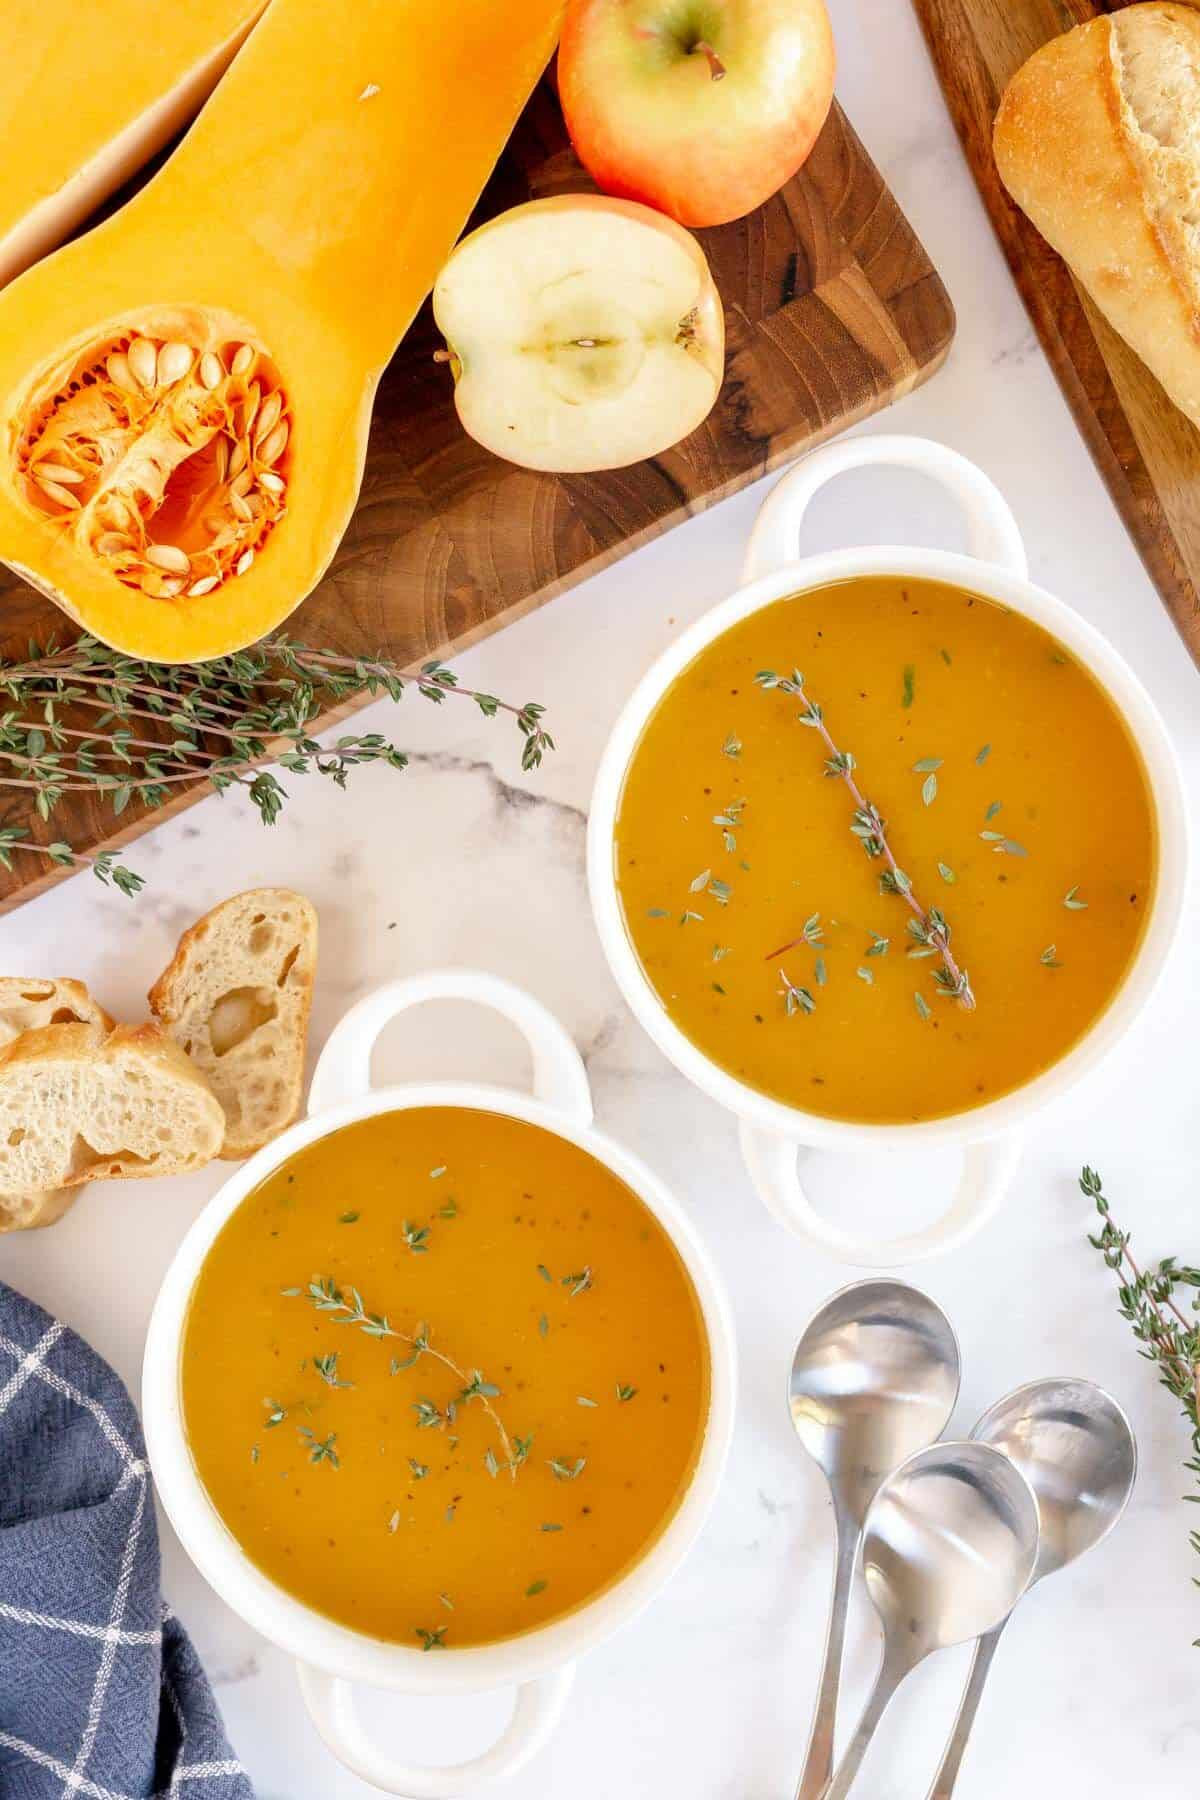 butternut squash soup in two white bowls